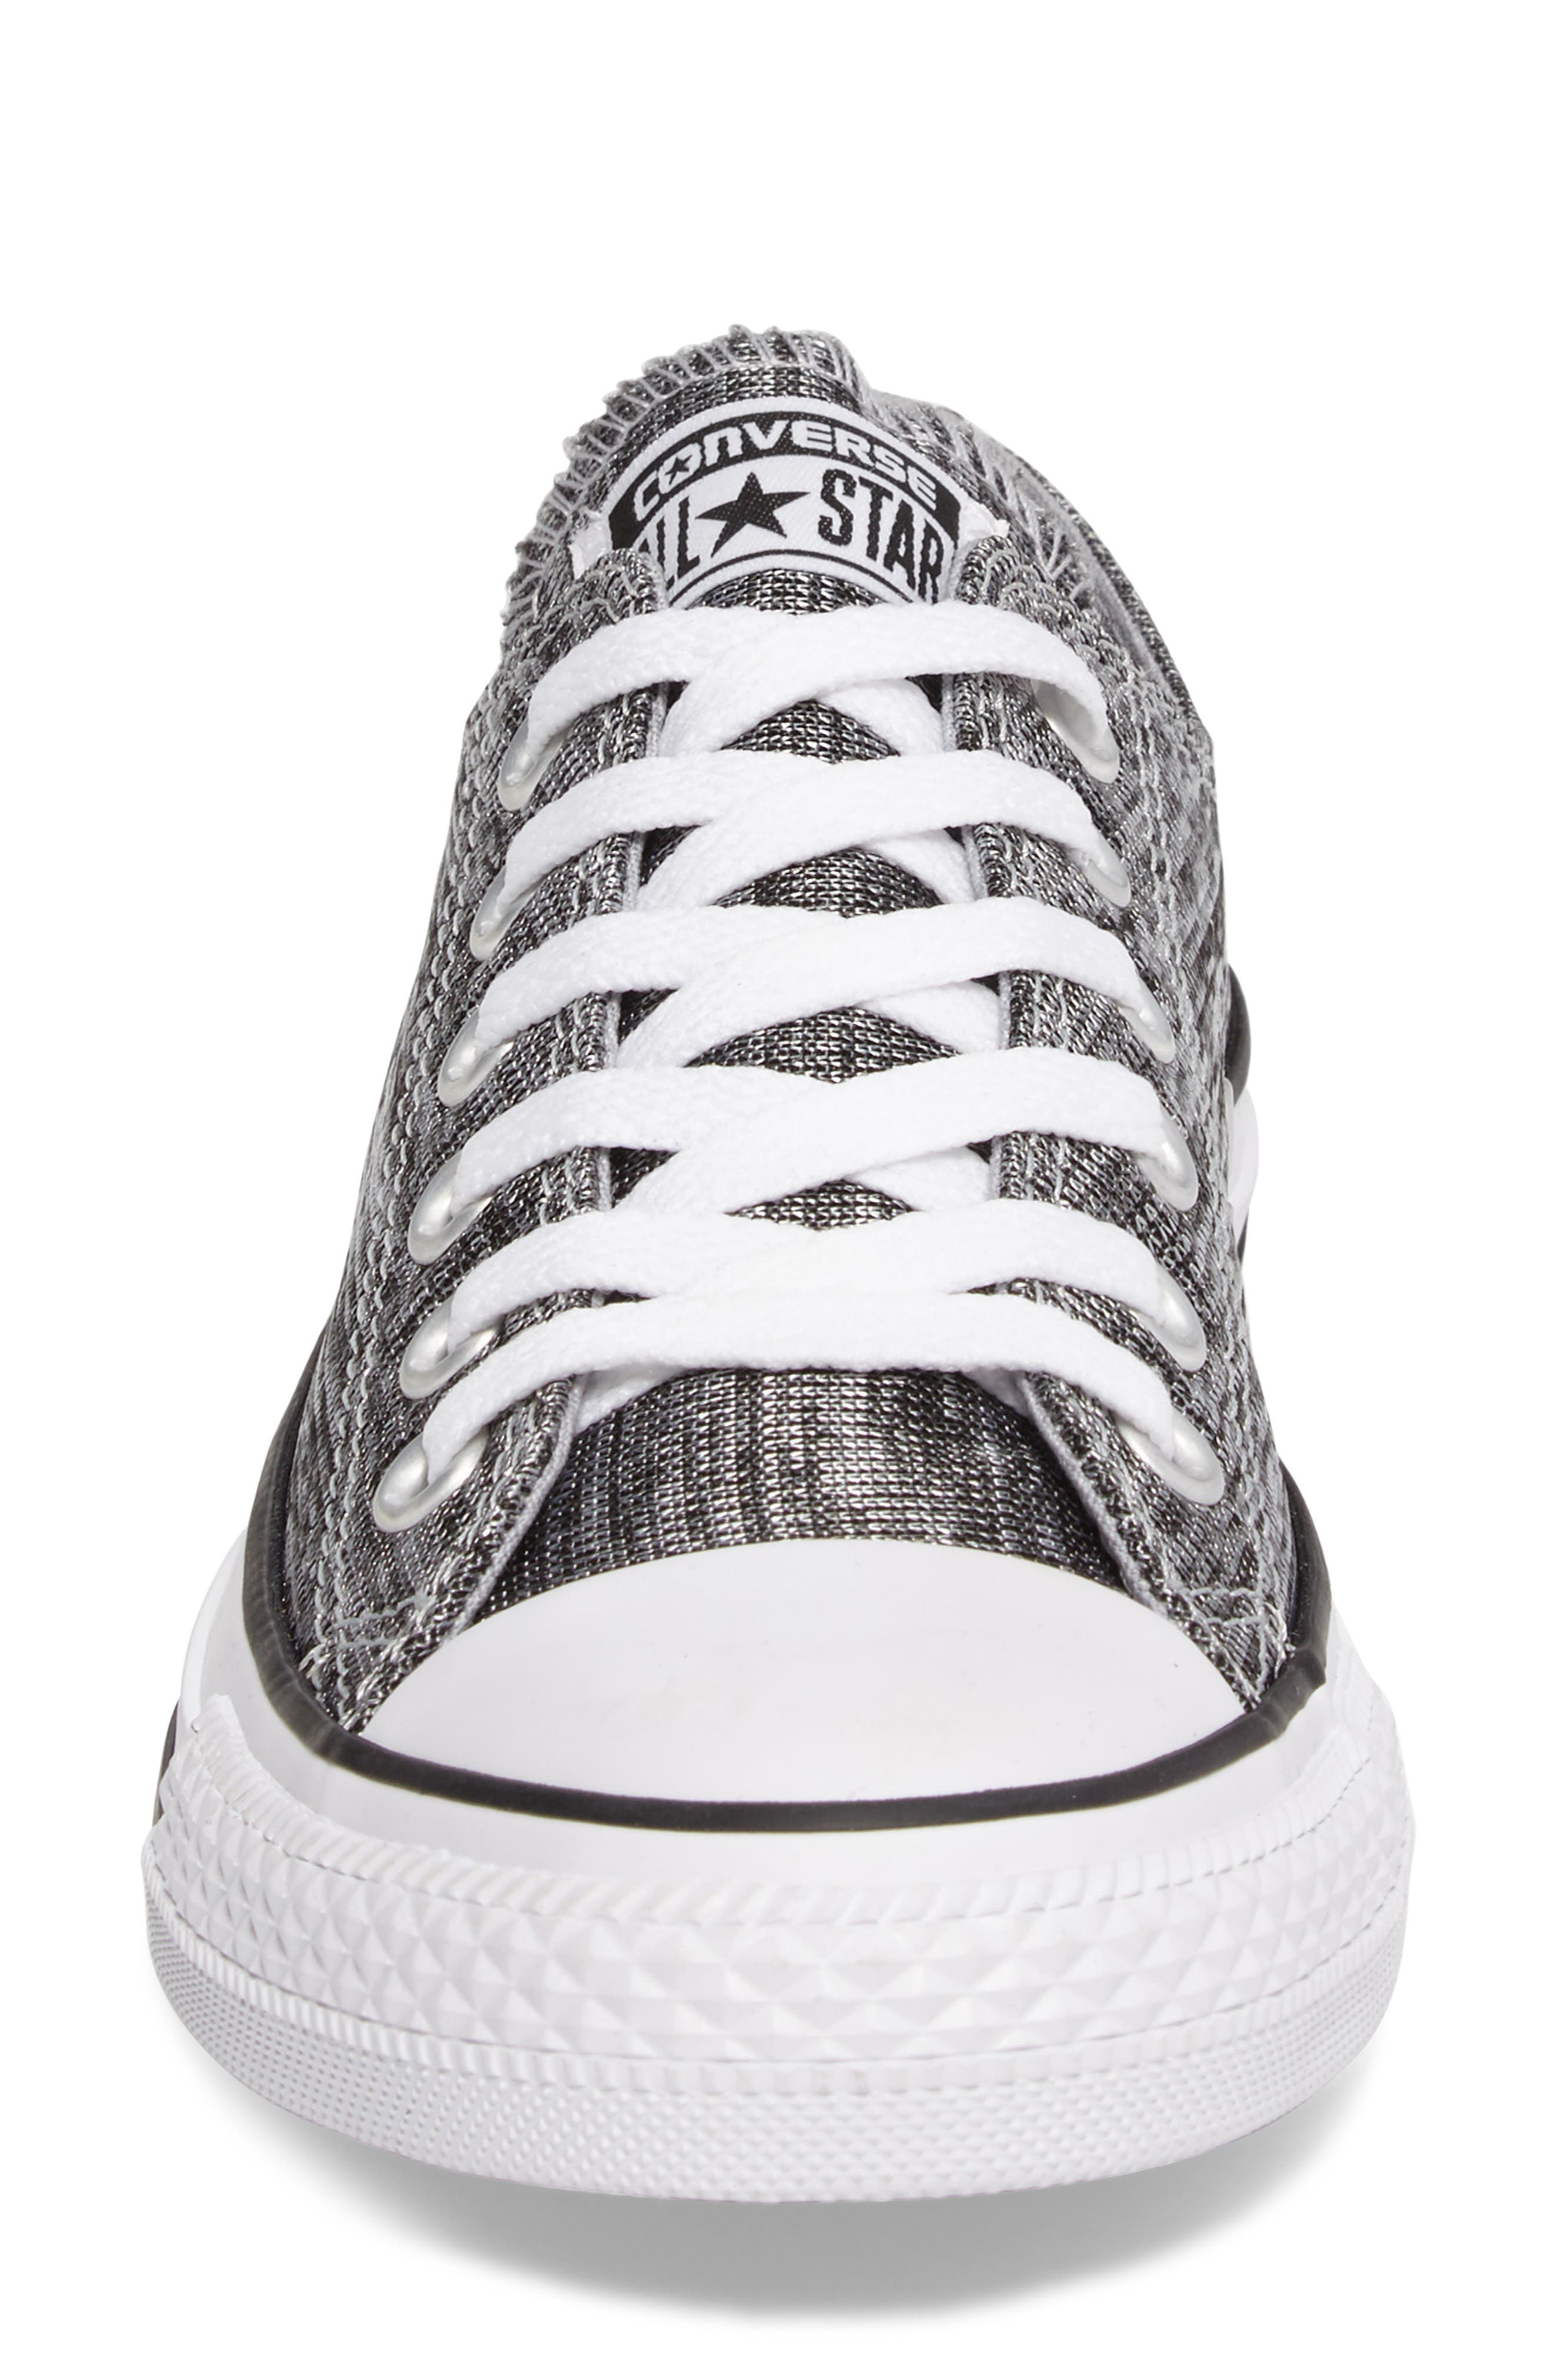 Alternate Image 4  - Converse Chuck Taylor® All Star® Knit Low Top Sneaker (Women)